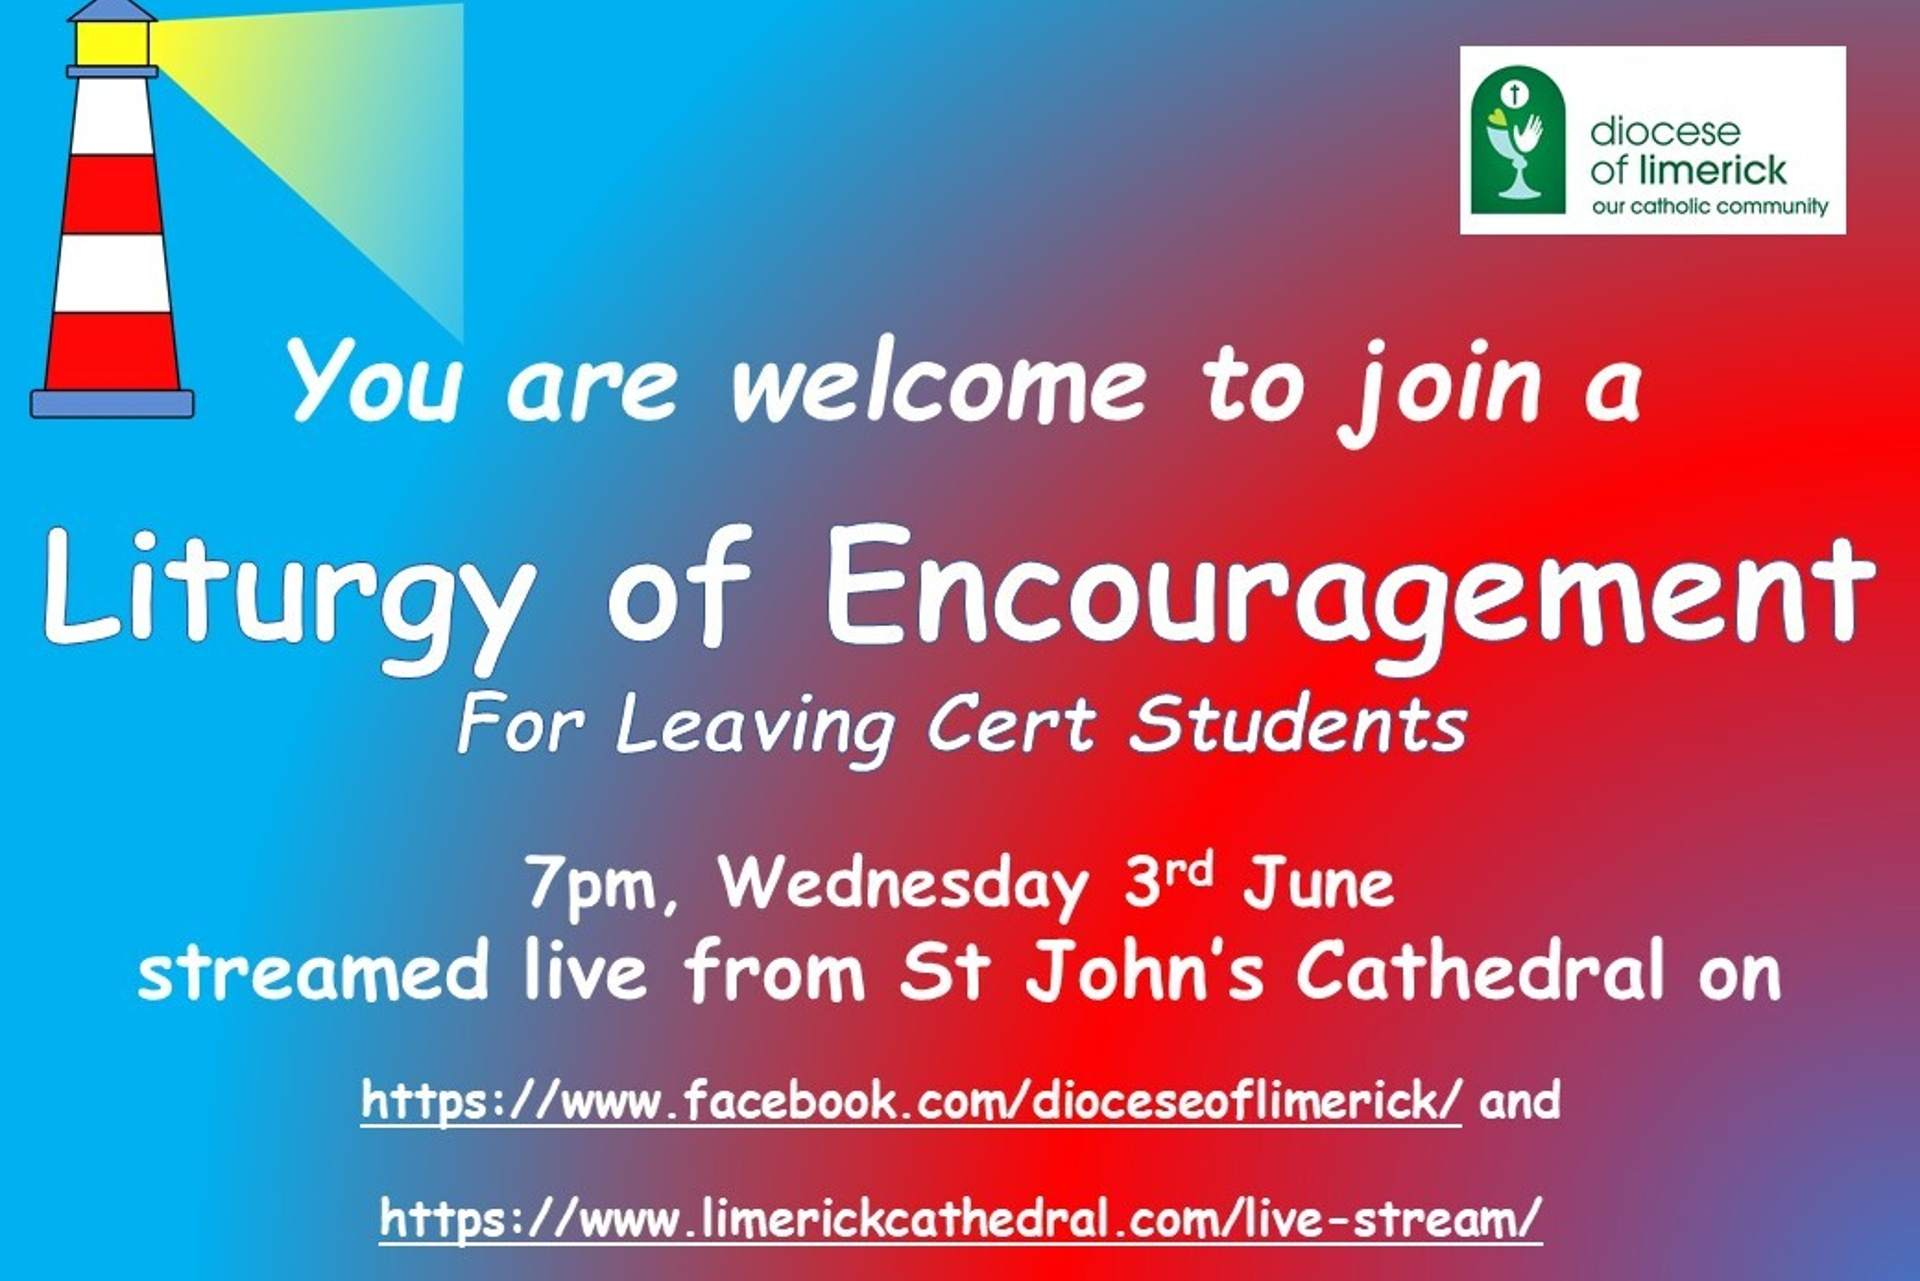 Liturgy of Encouragement